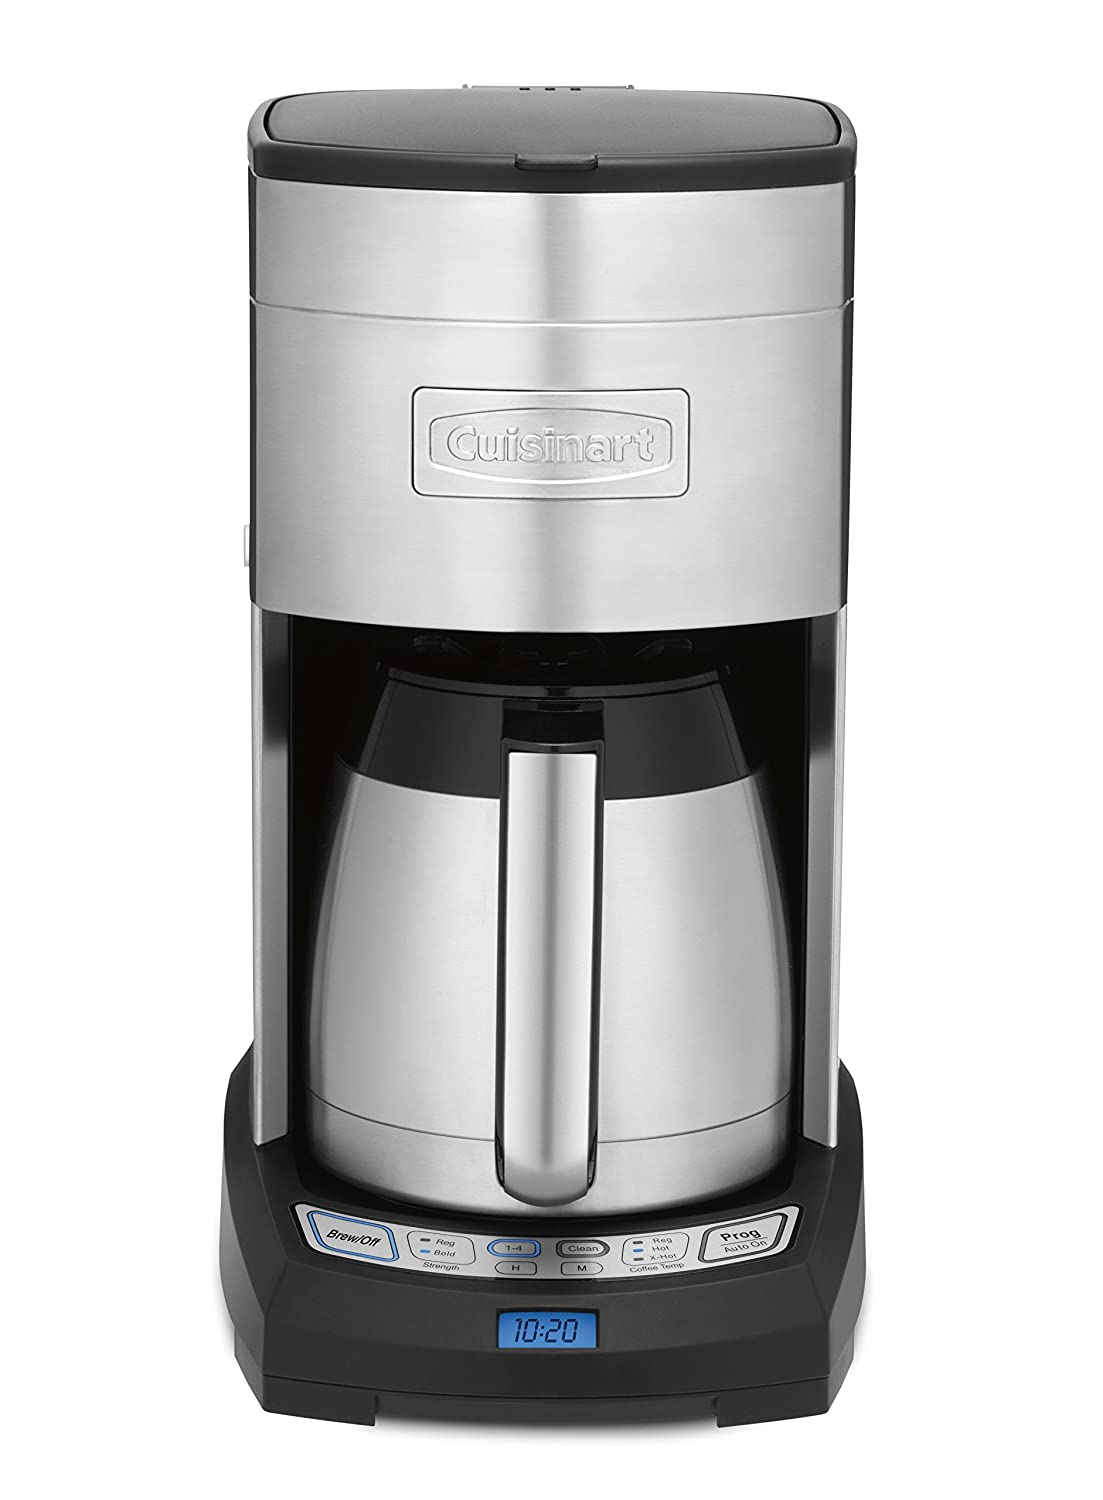 Cuisinart 12-cup cafetera 10-cup Stainless Steel/Black: Amazon.es ...